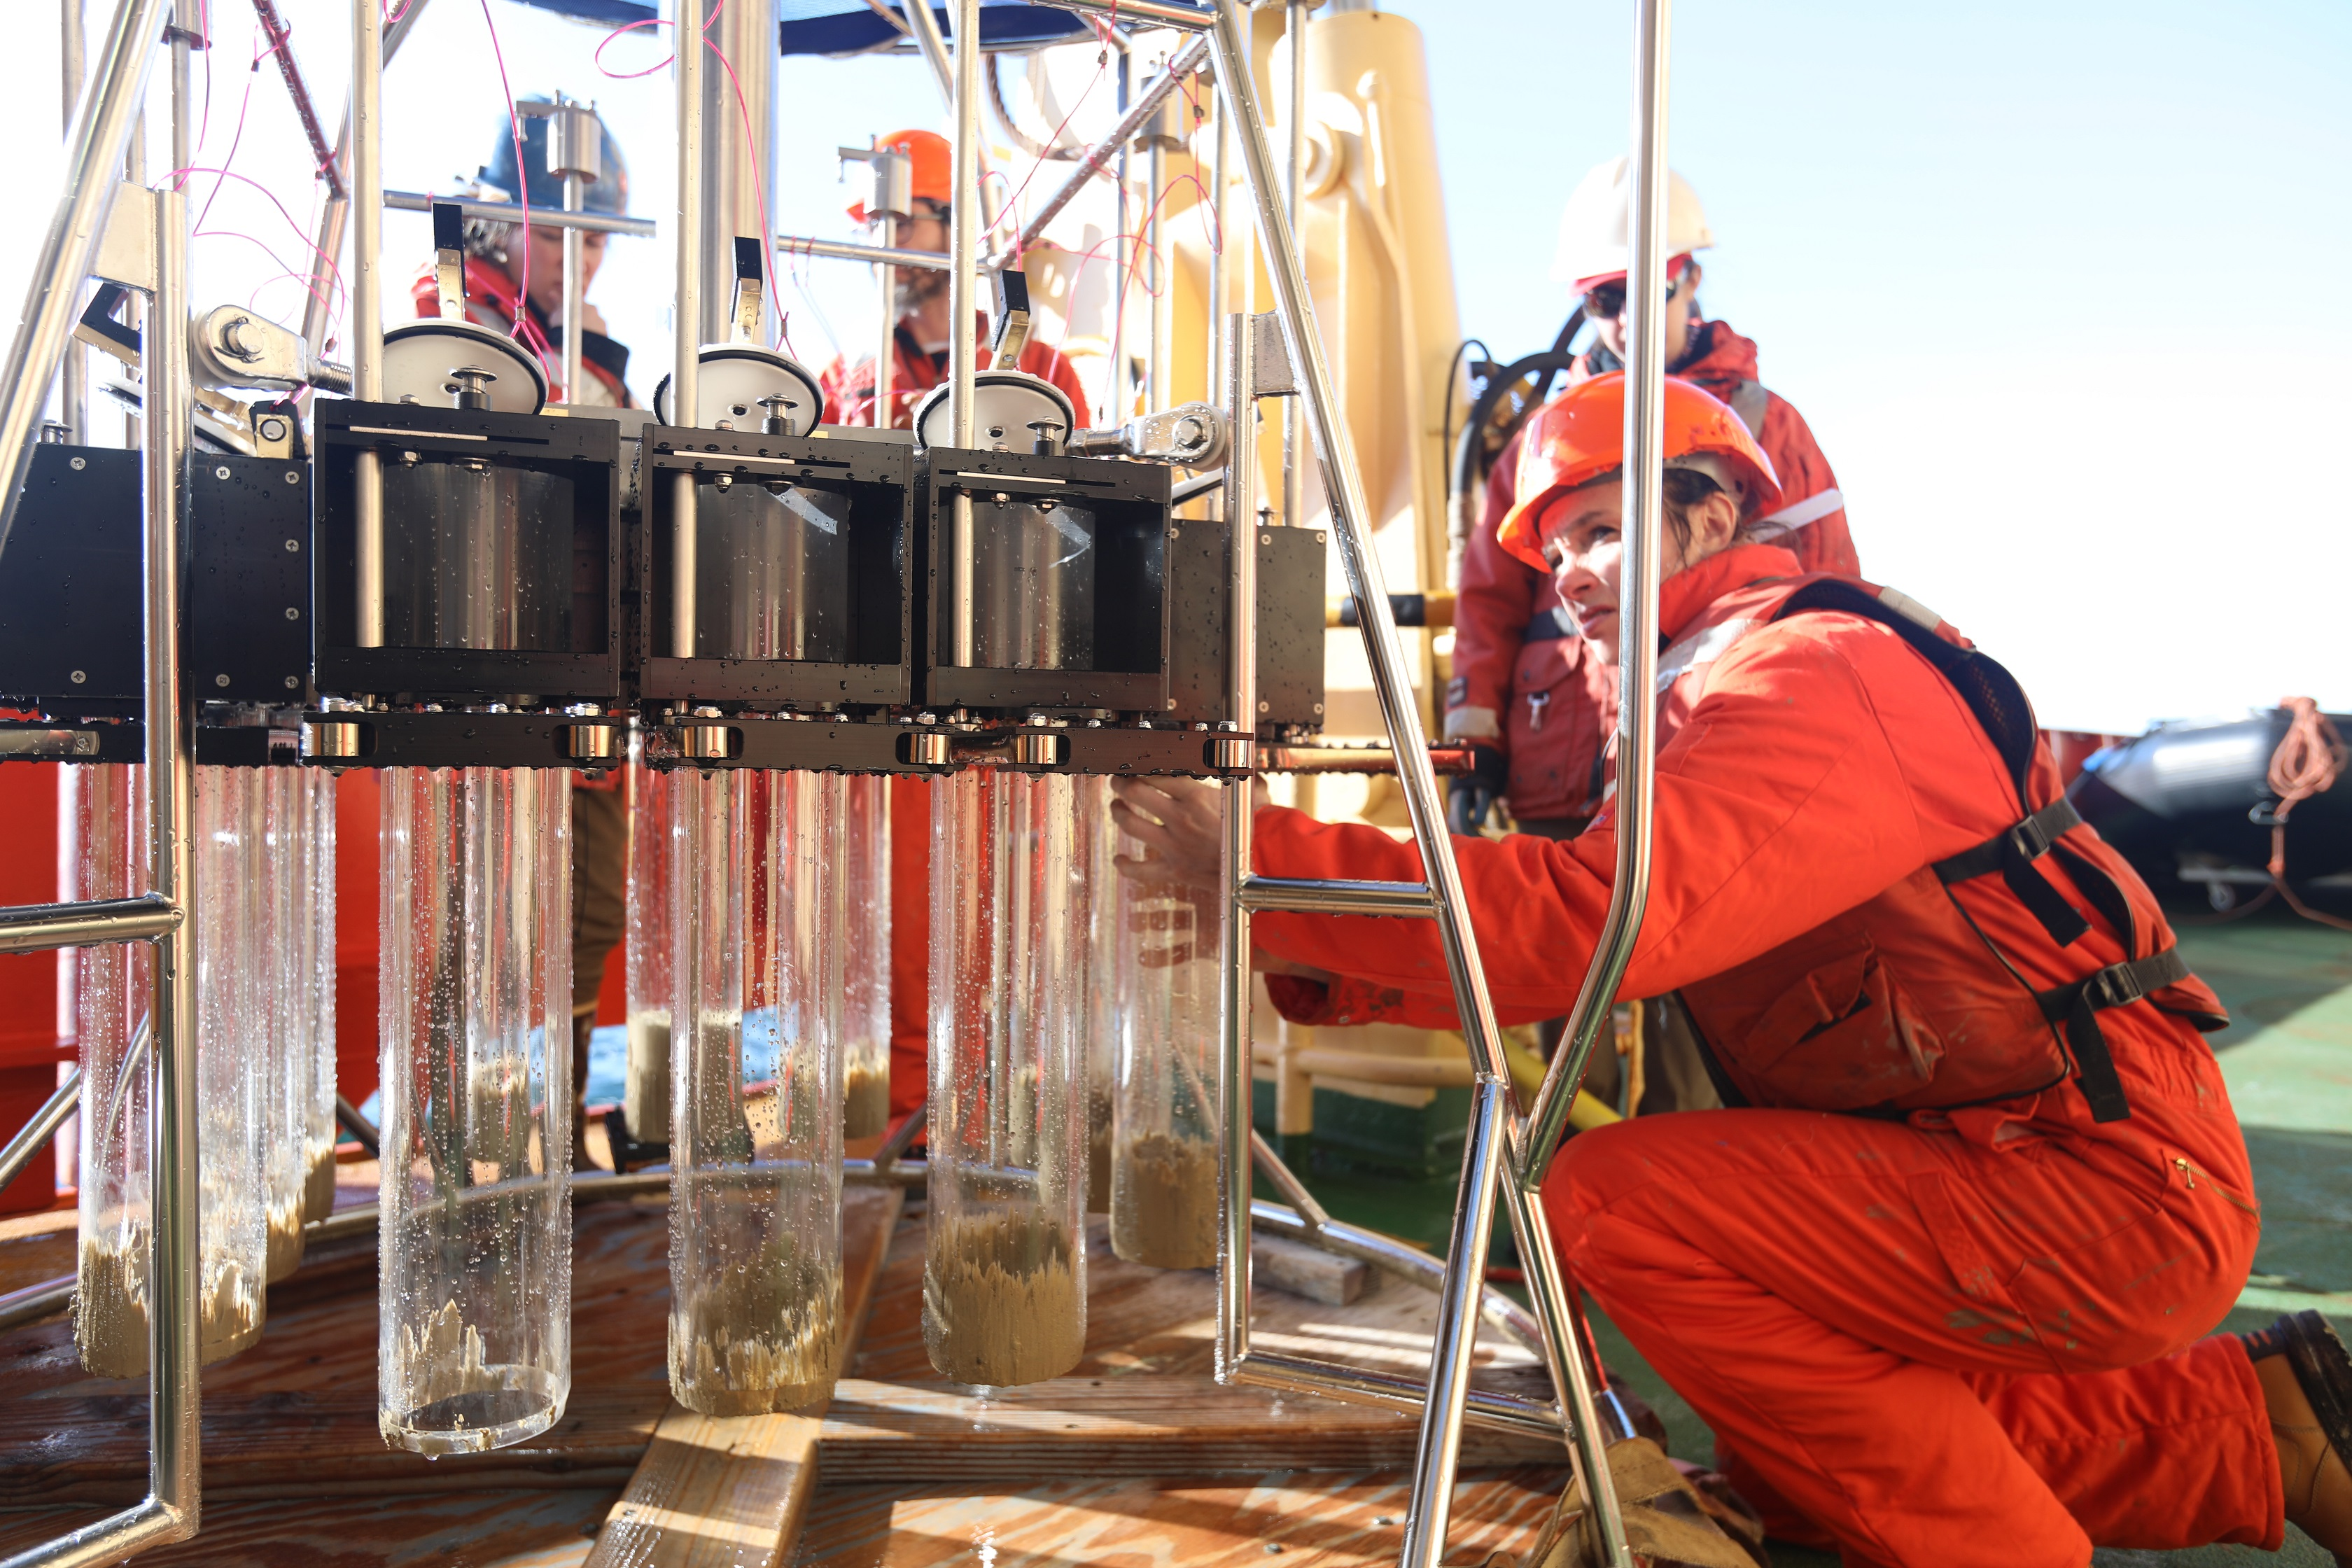 Kelly Hogan with sediment corer onboard the Nathaniel B. Palmer. Credit: Linda Welzenbach